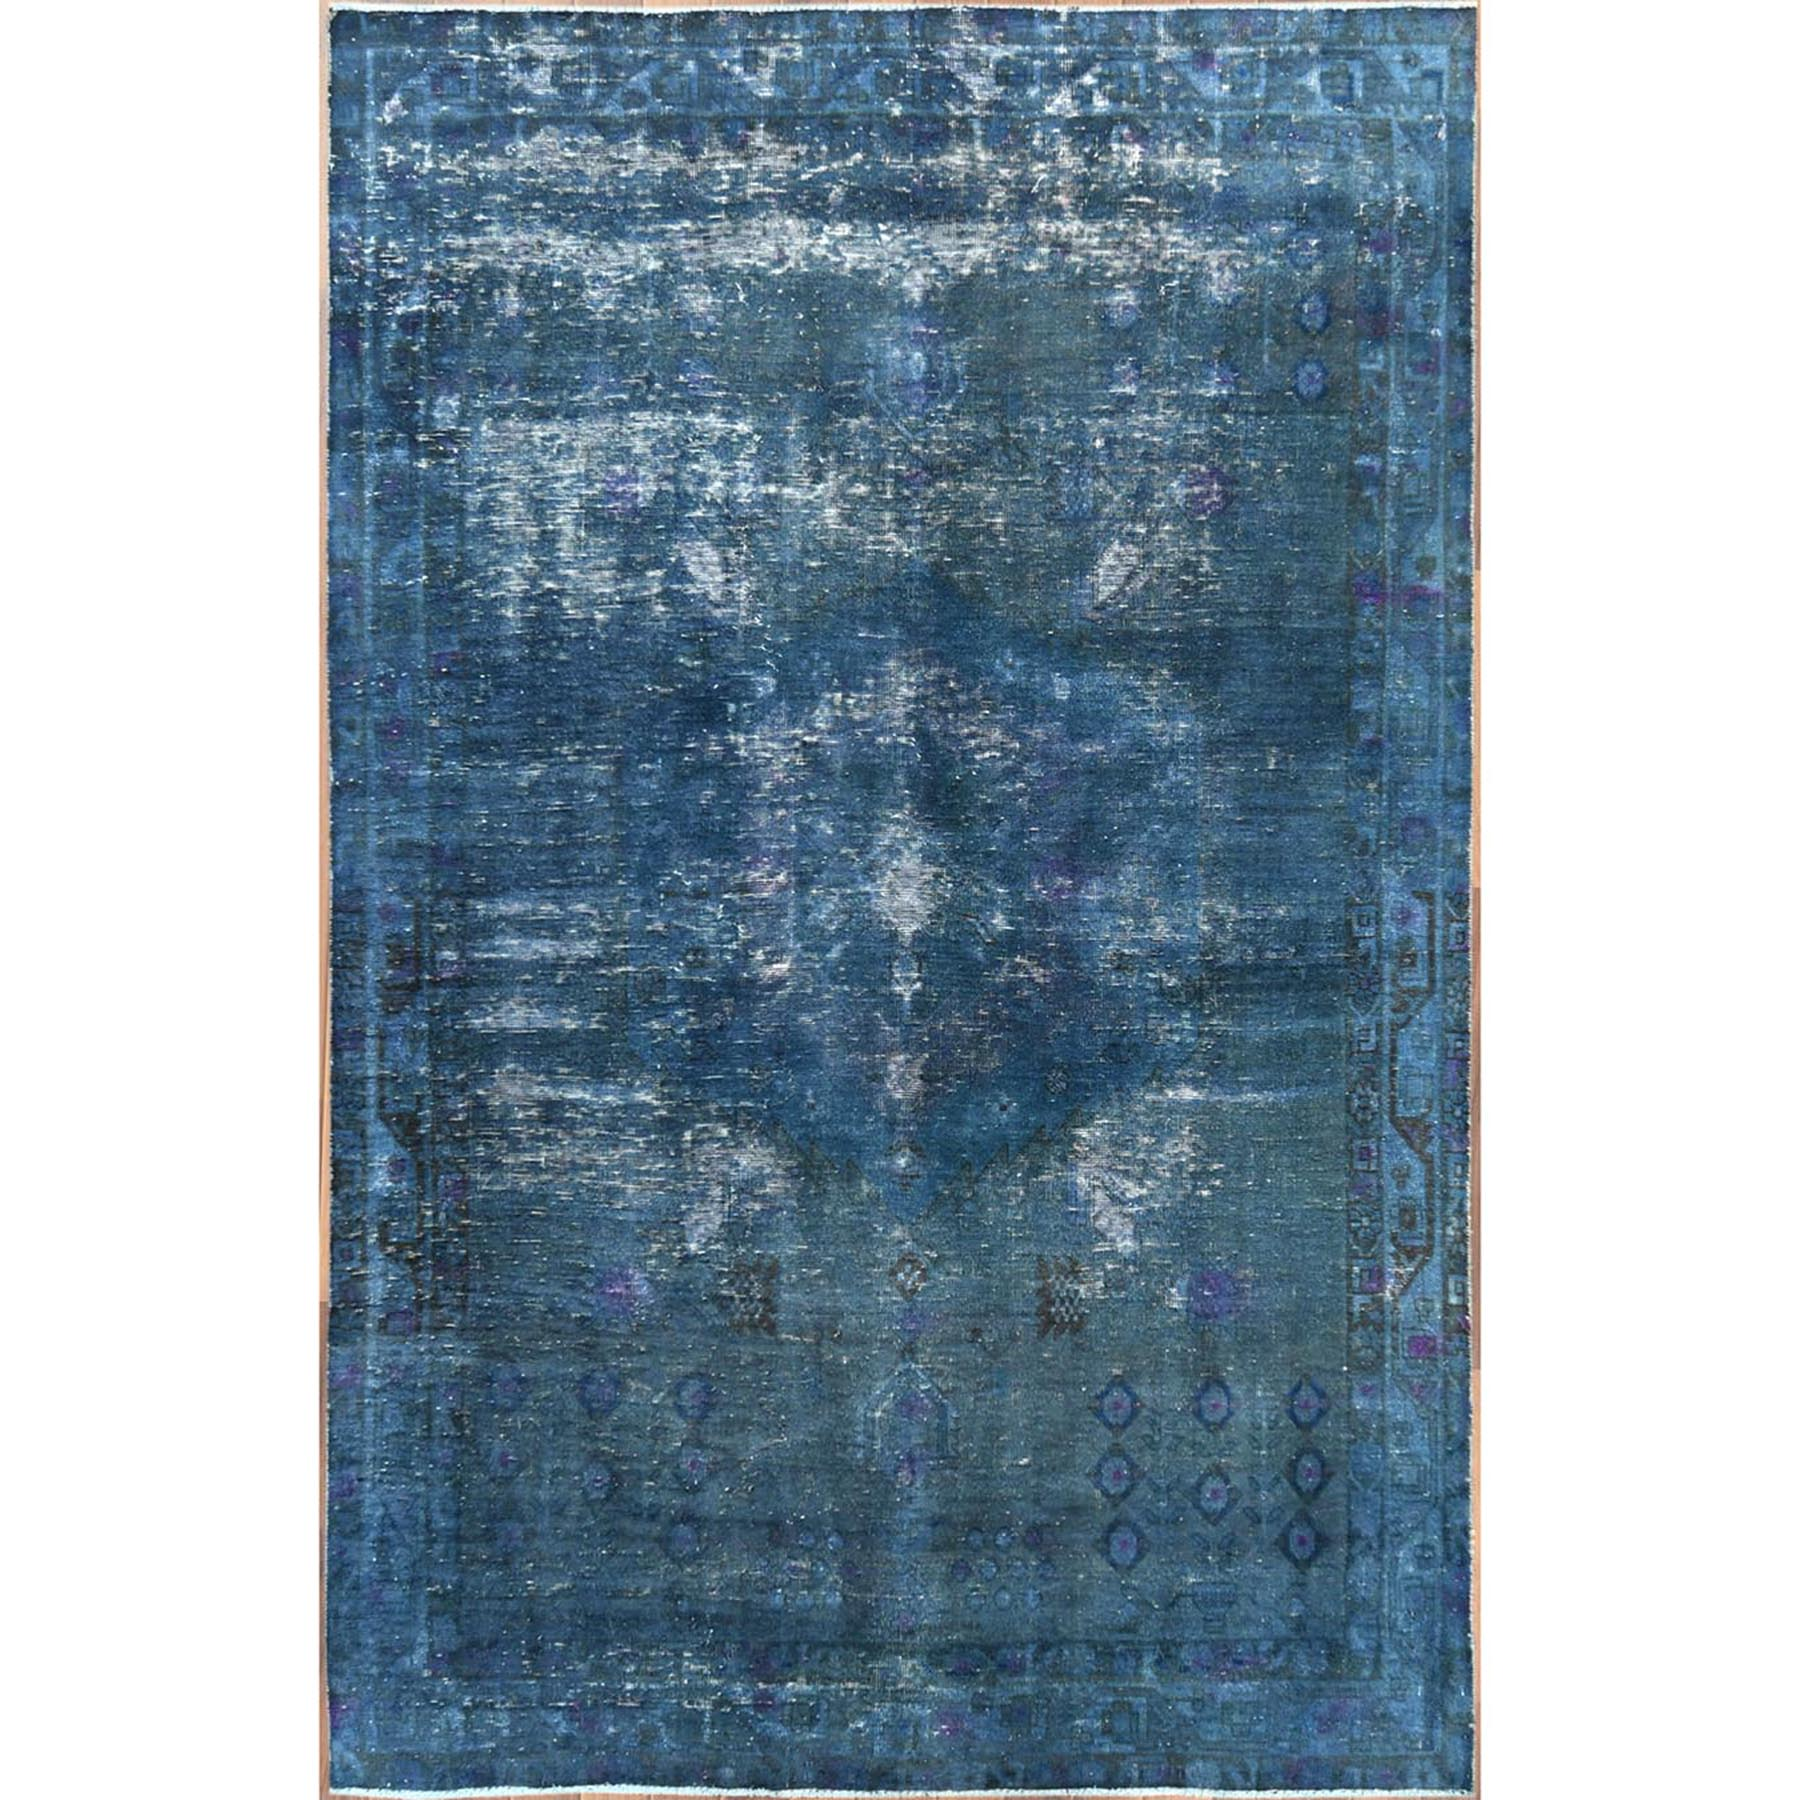 "5'x7'8"" Hand Woven Overcast Blue Persian Shiraz Old Cropped Thin Organic Wool Shabby Chic Clean Oriental Rug"